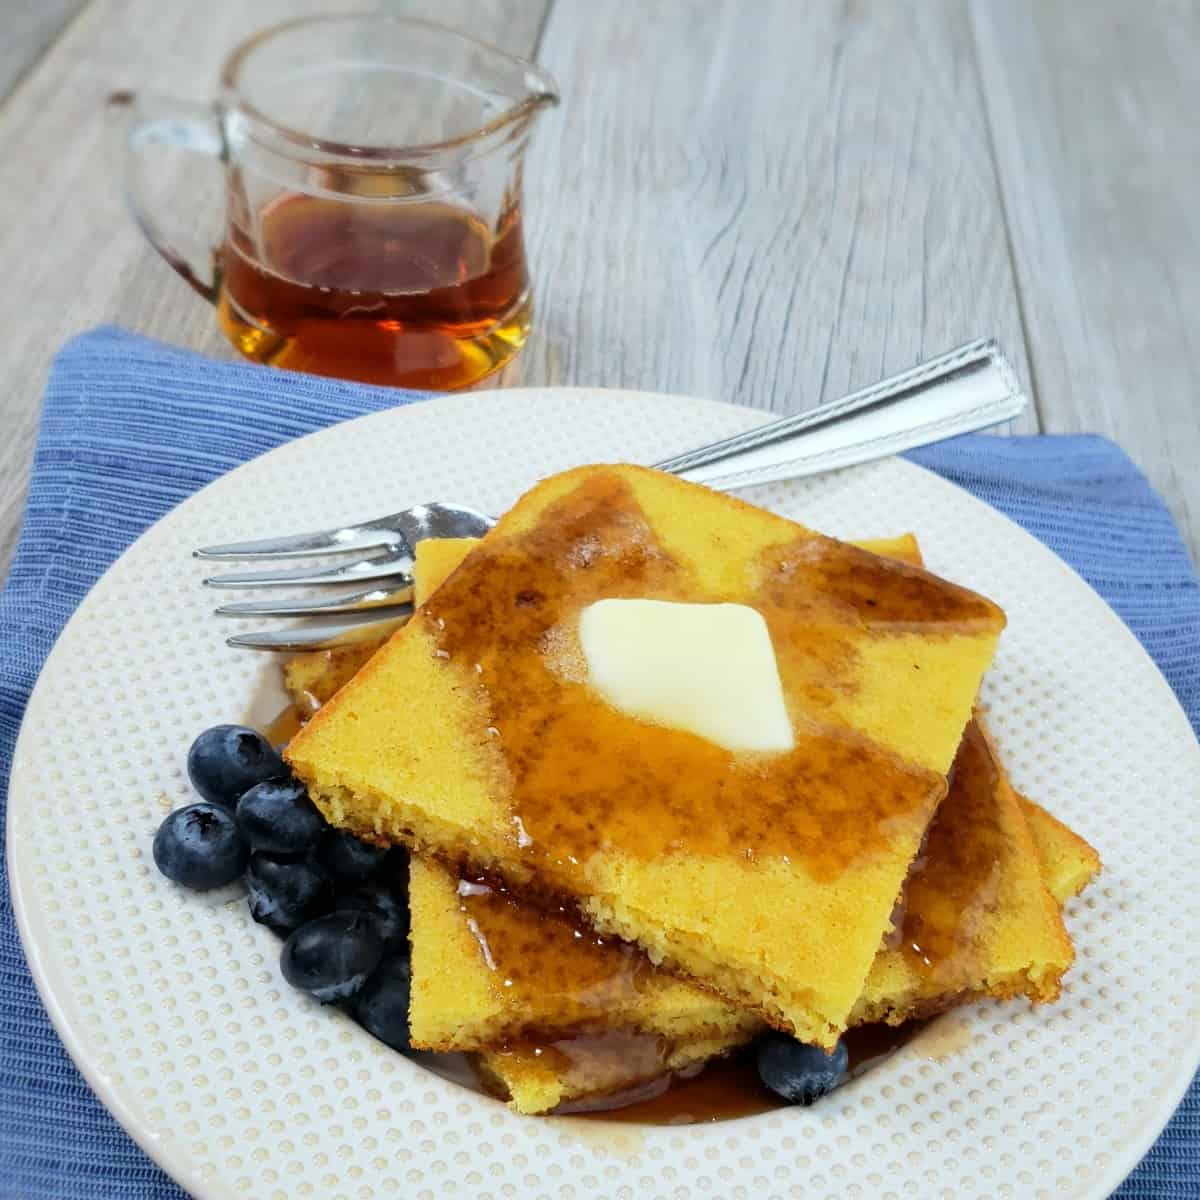 Stack of square pancakes on white plate with butter pat and drizzled syrup; tiny pitcher of syrup in background